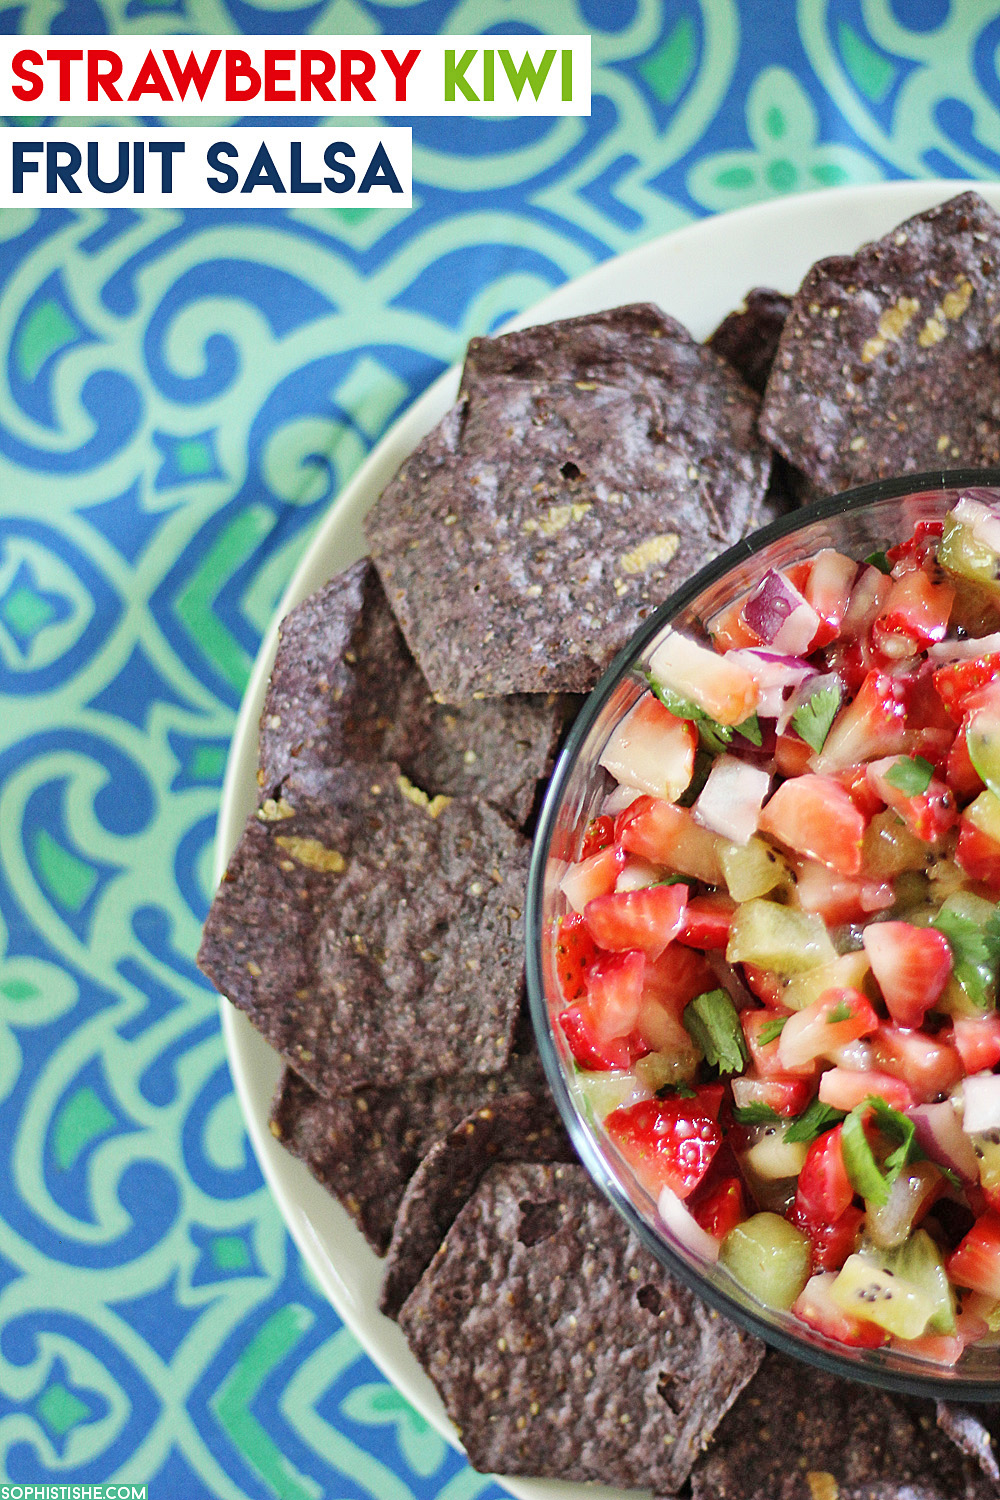 Summer Snack Idea: Strawberry Kiwi Fruit Salsa